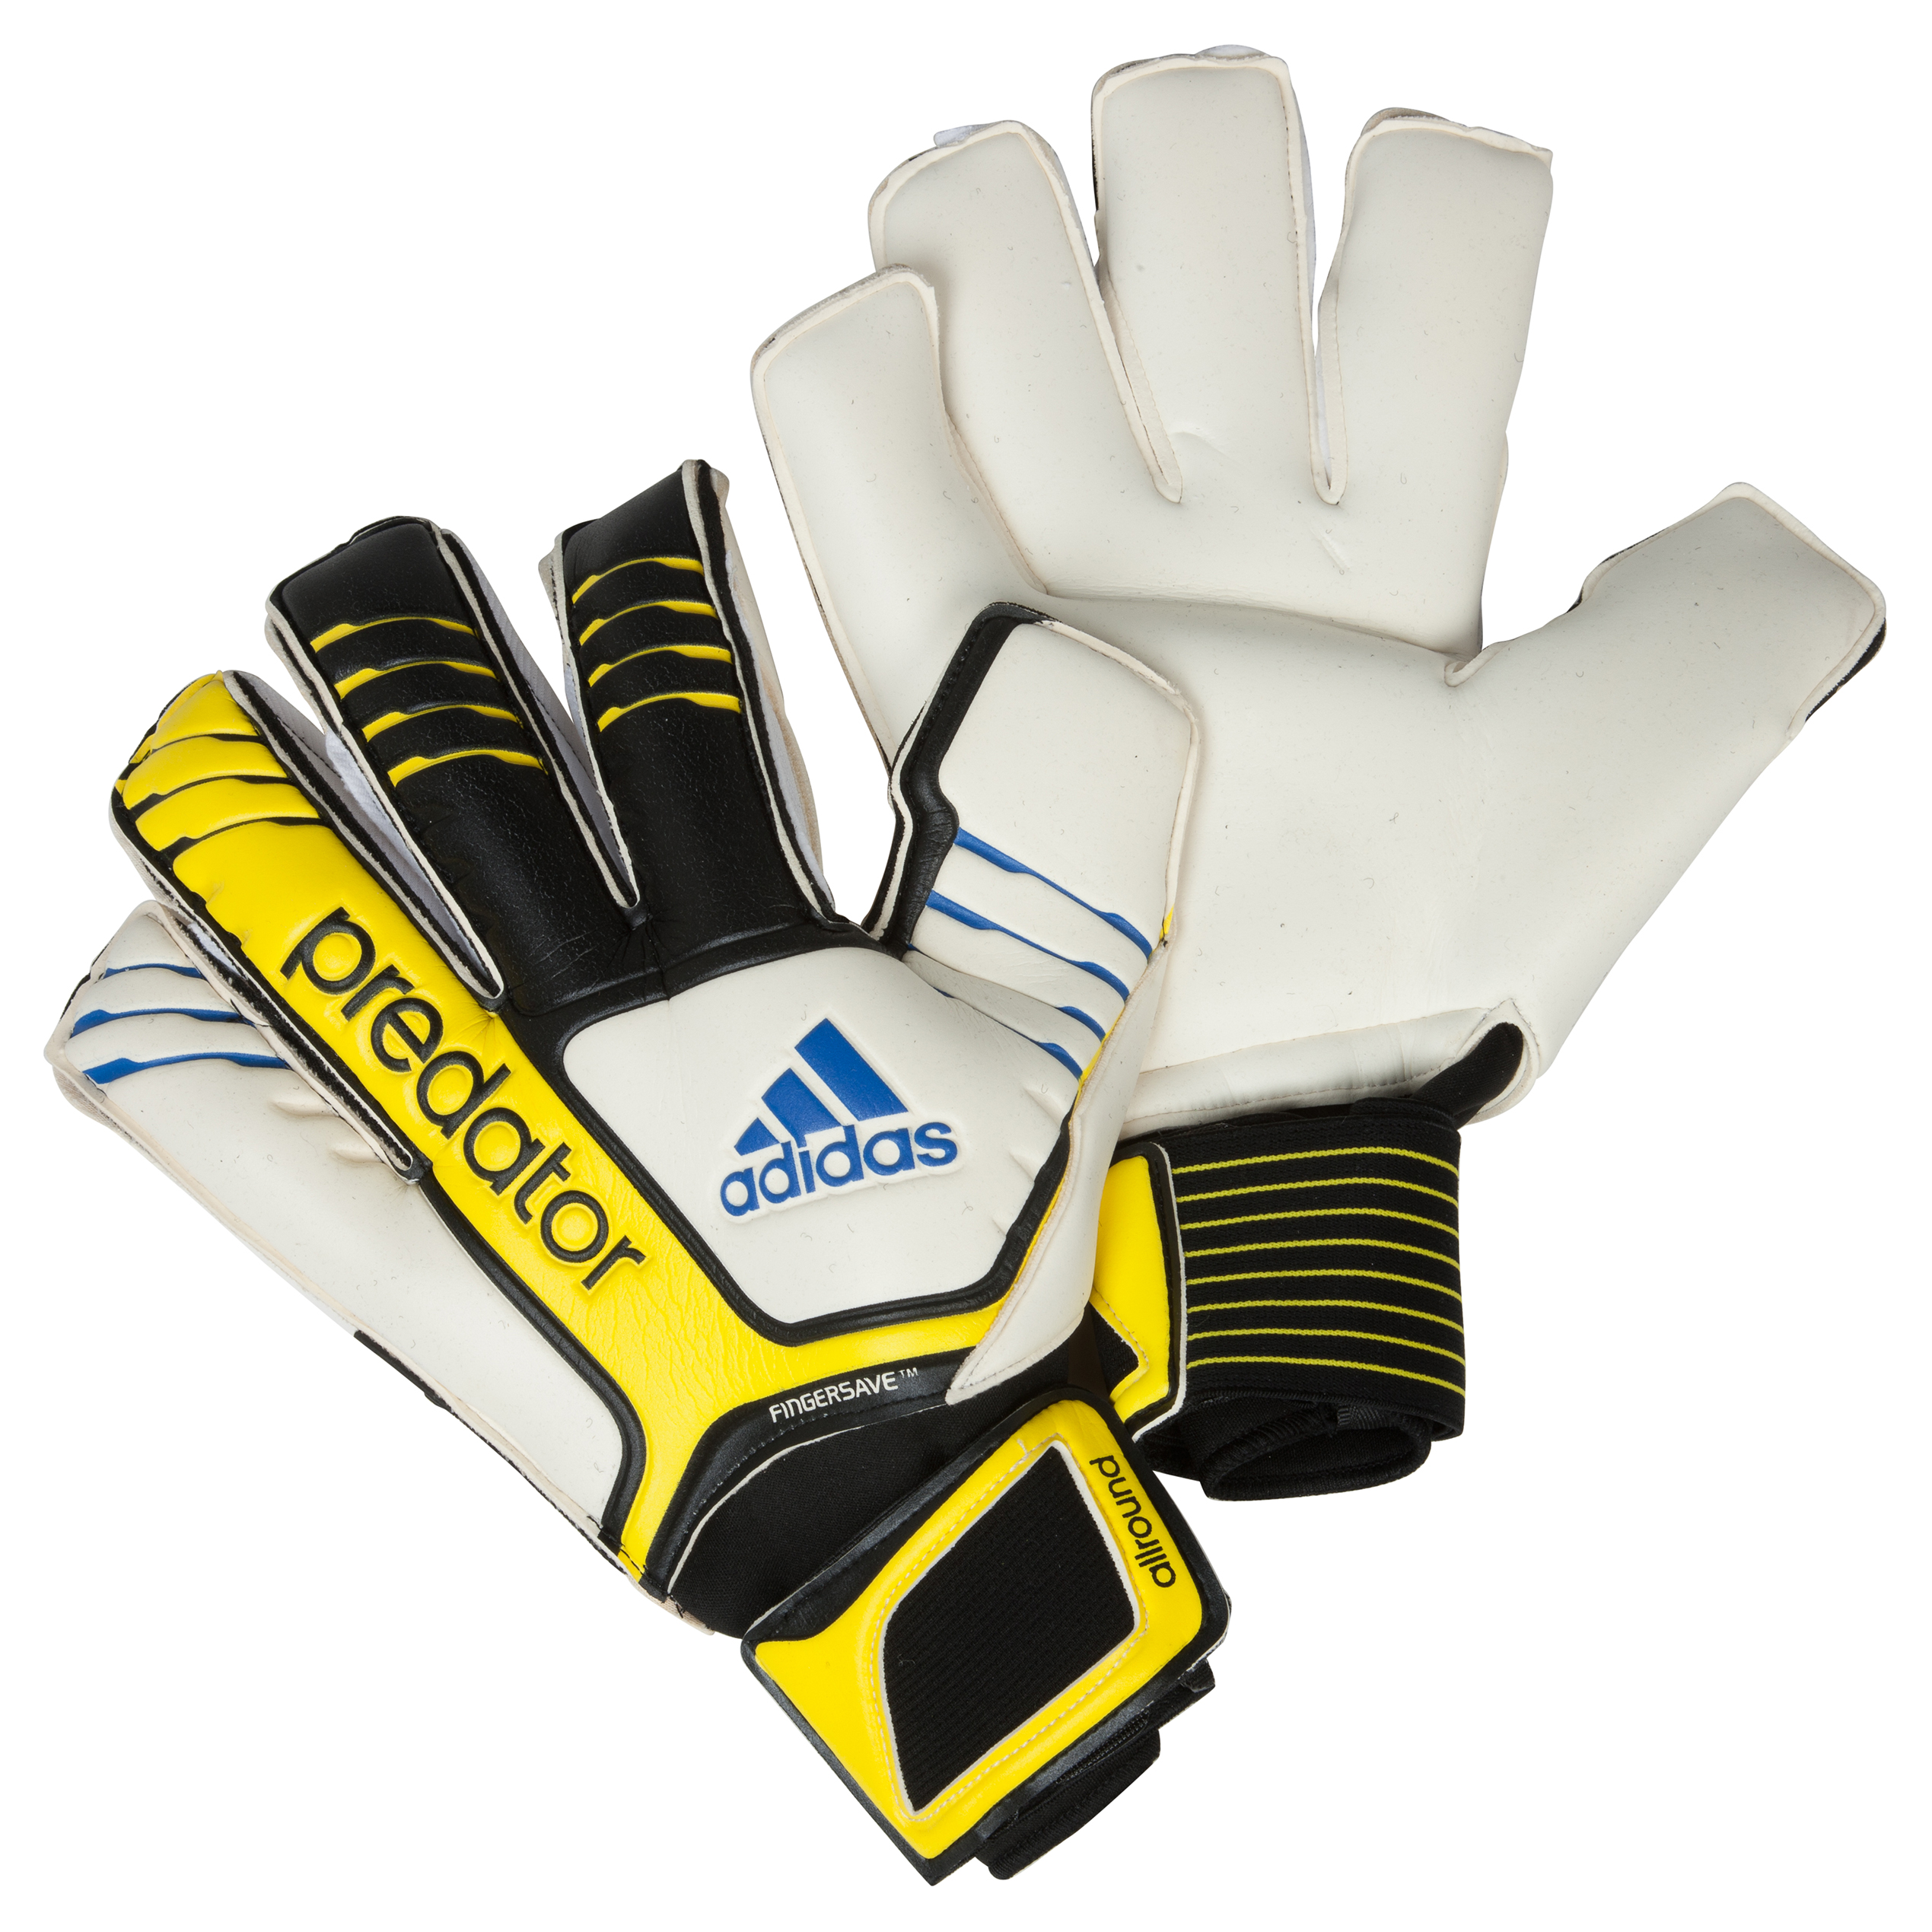 adidas Predator FS All Goalkeeper Gloves - Black/White/Vivid Yellow /Prime Blue